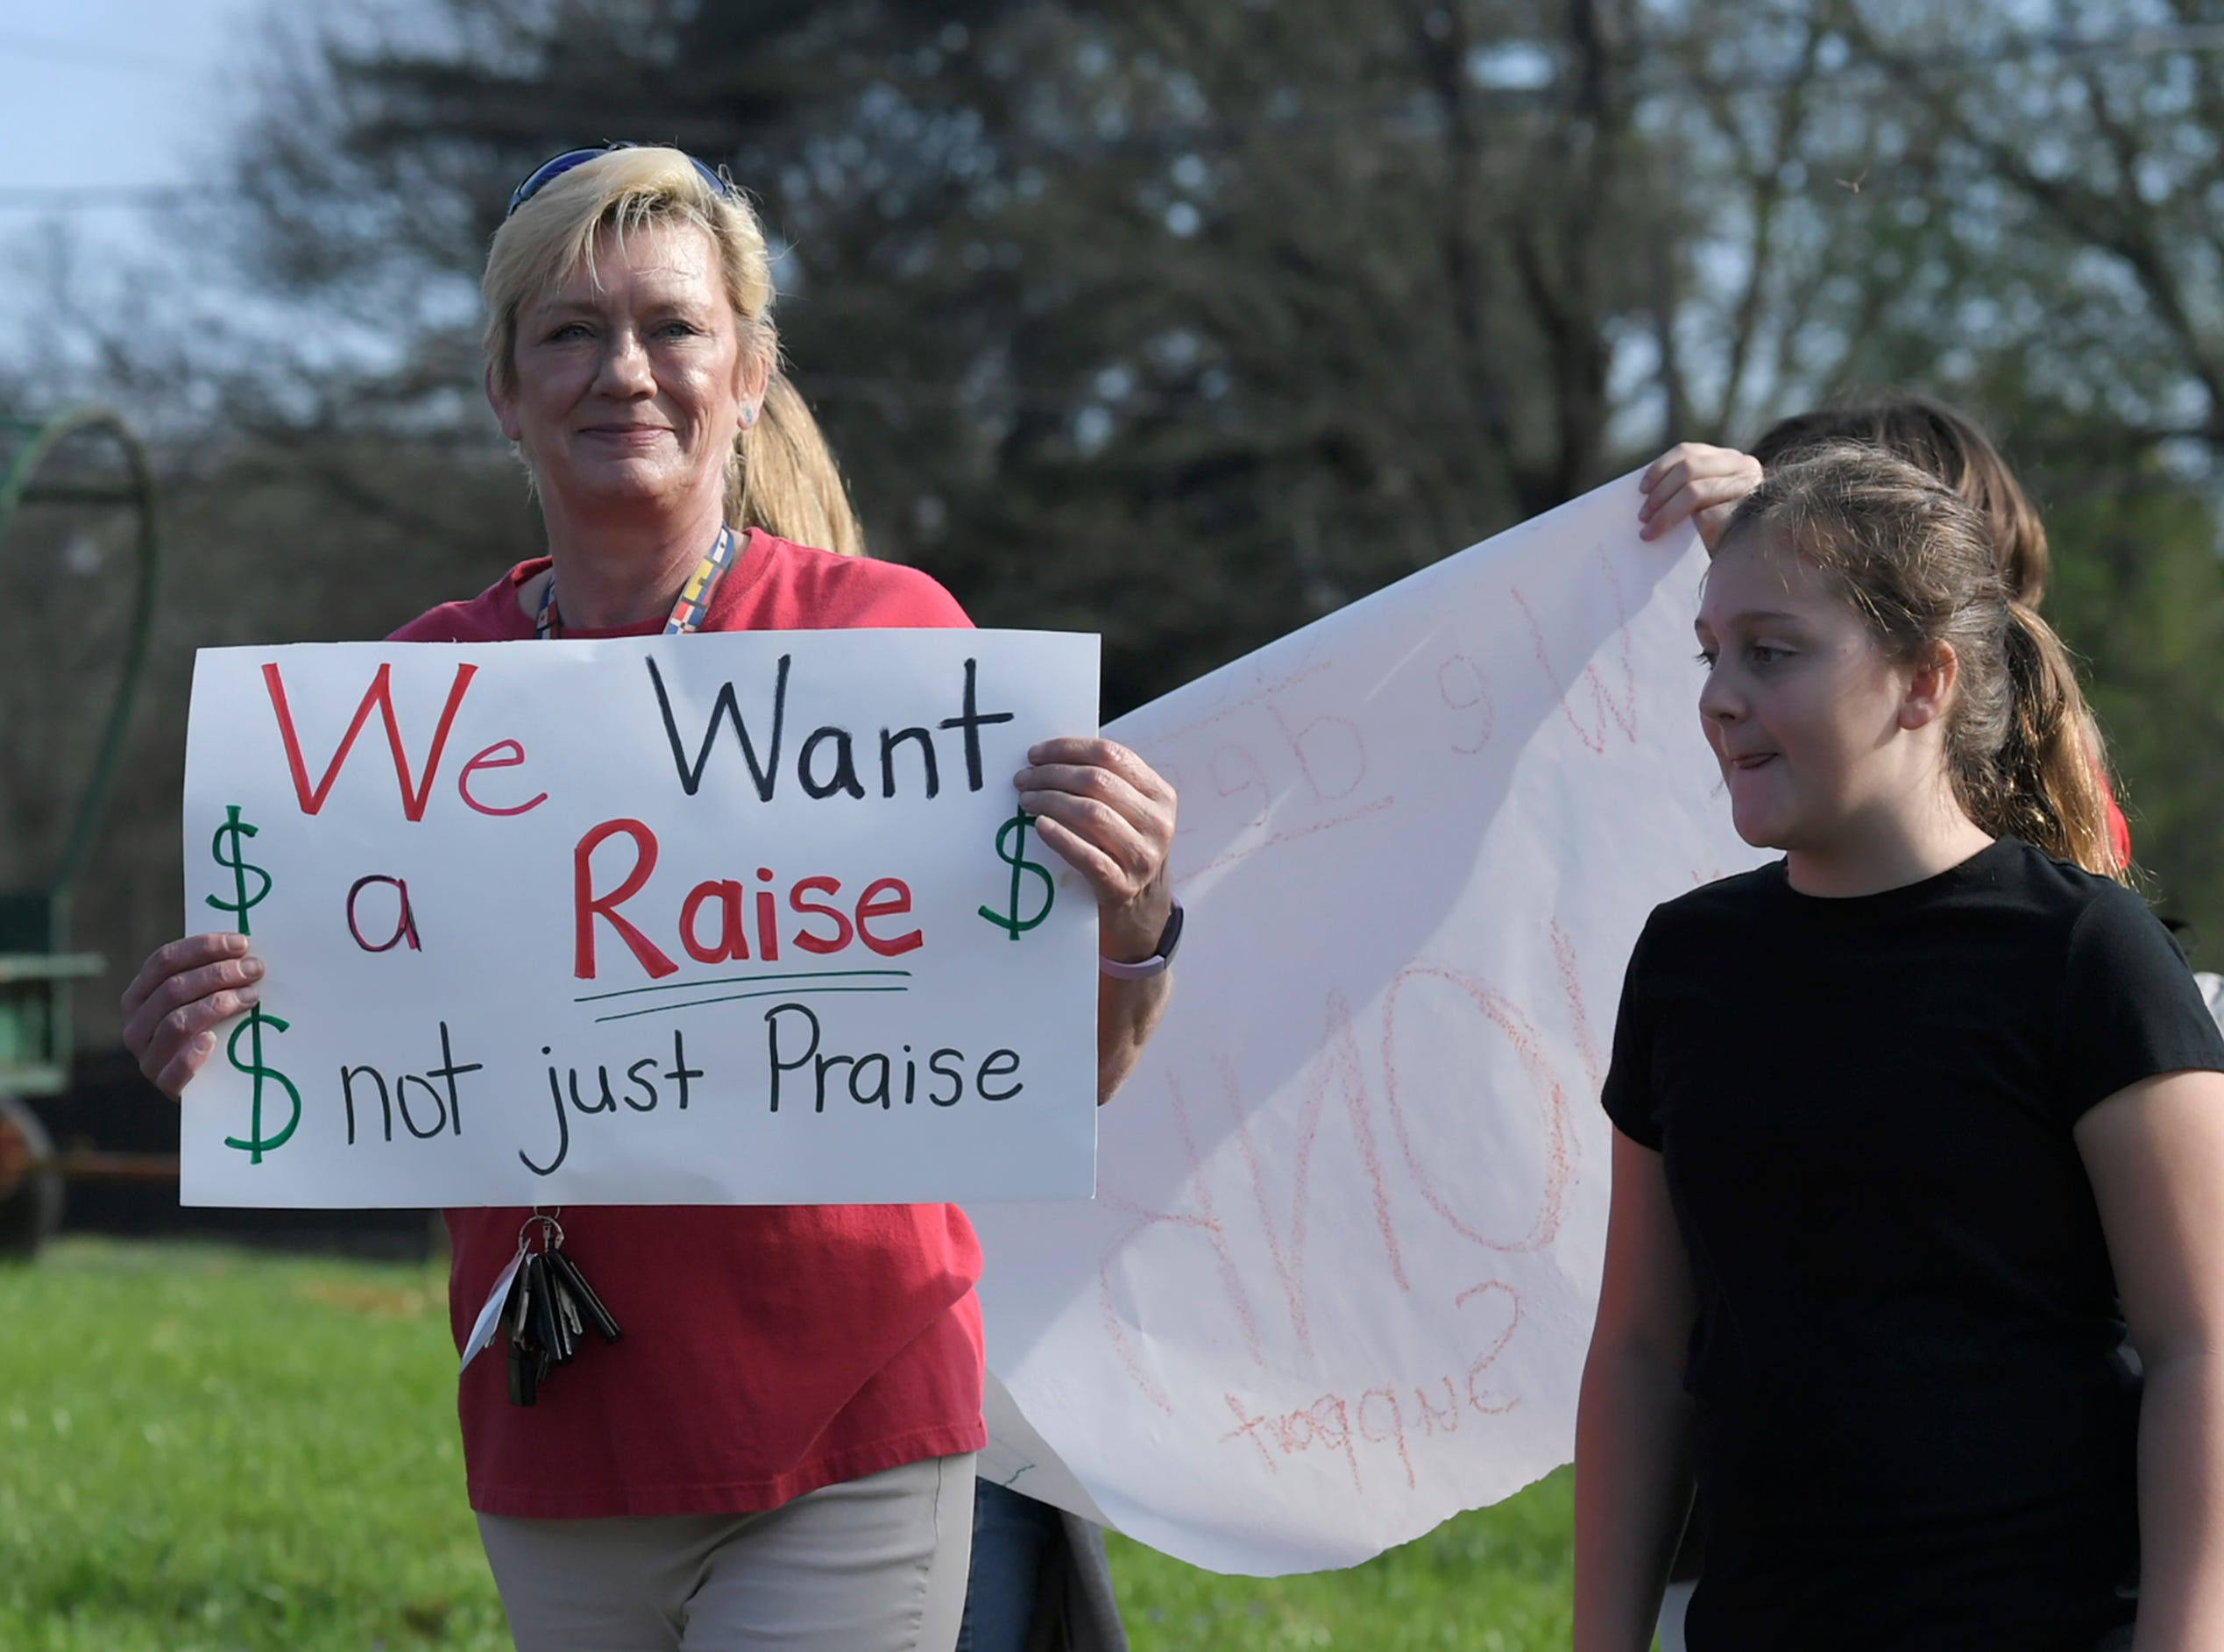 Supporters rally for teacher raises at JT Moore Middle School Tuesday, April 9, 2019, in Nashville, Tenn.